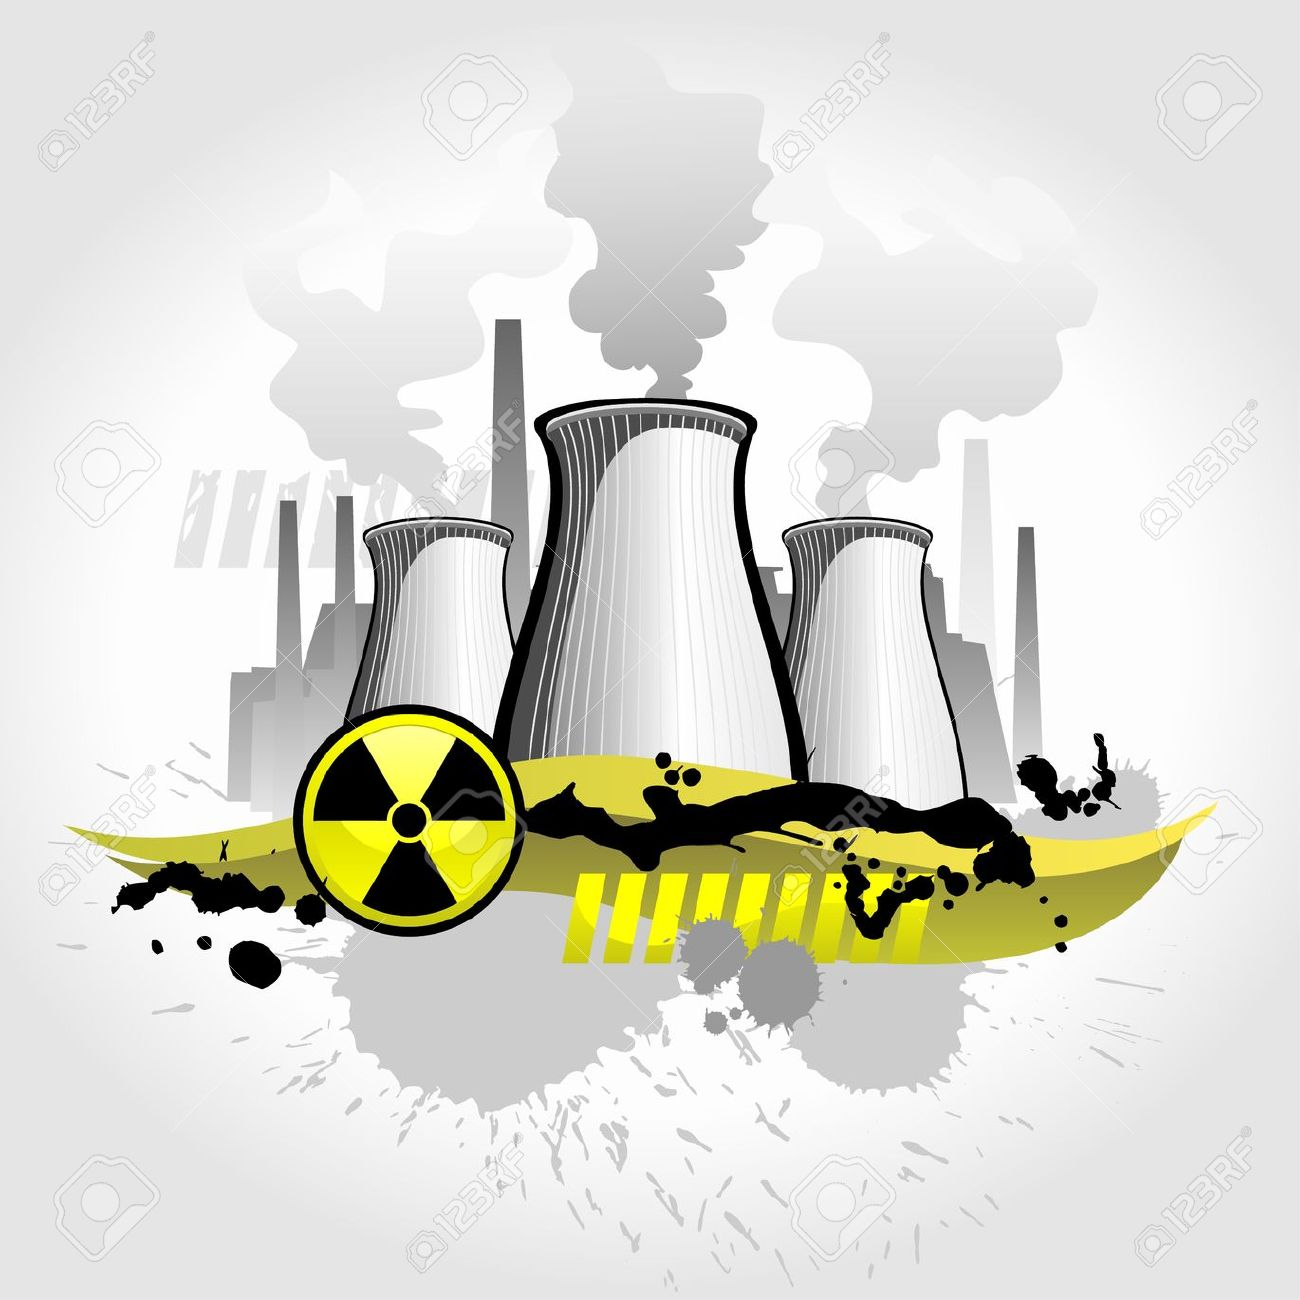 Nuclear plant clipart - Clipground